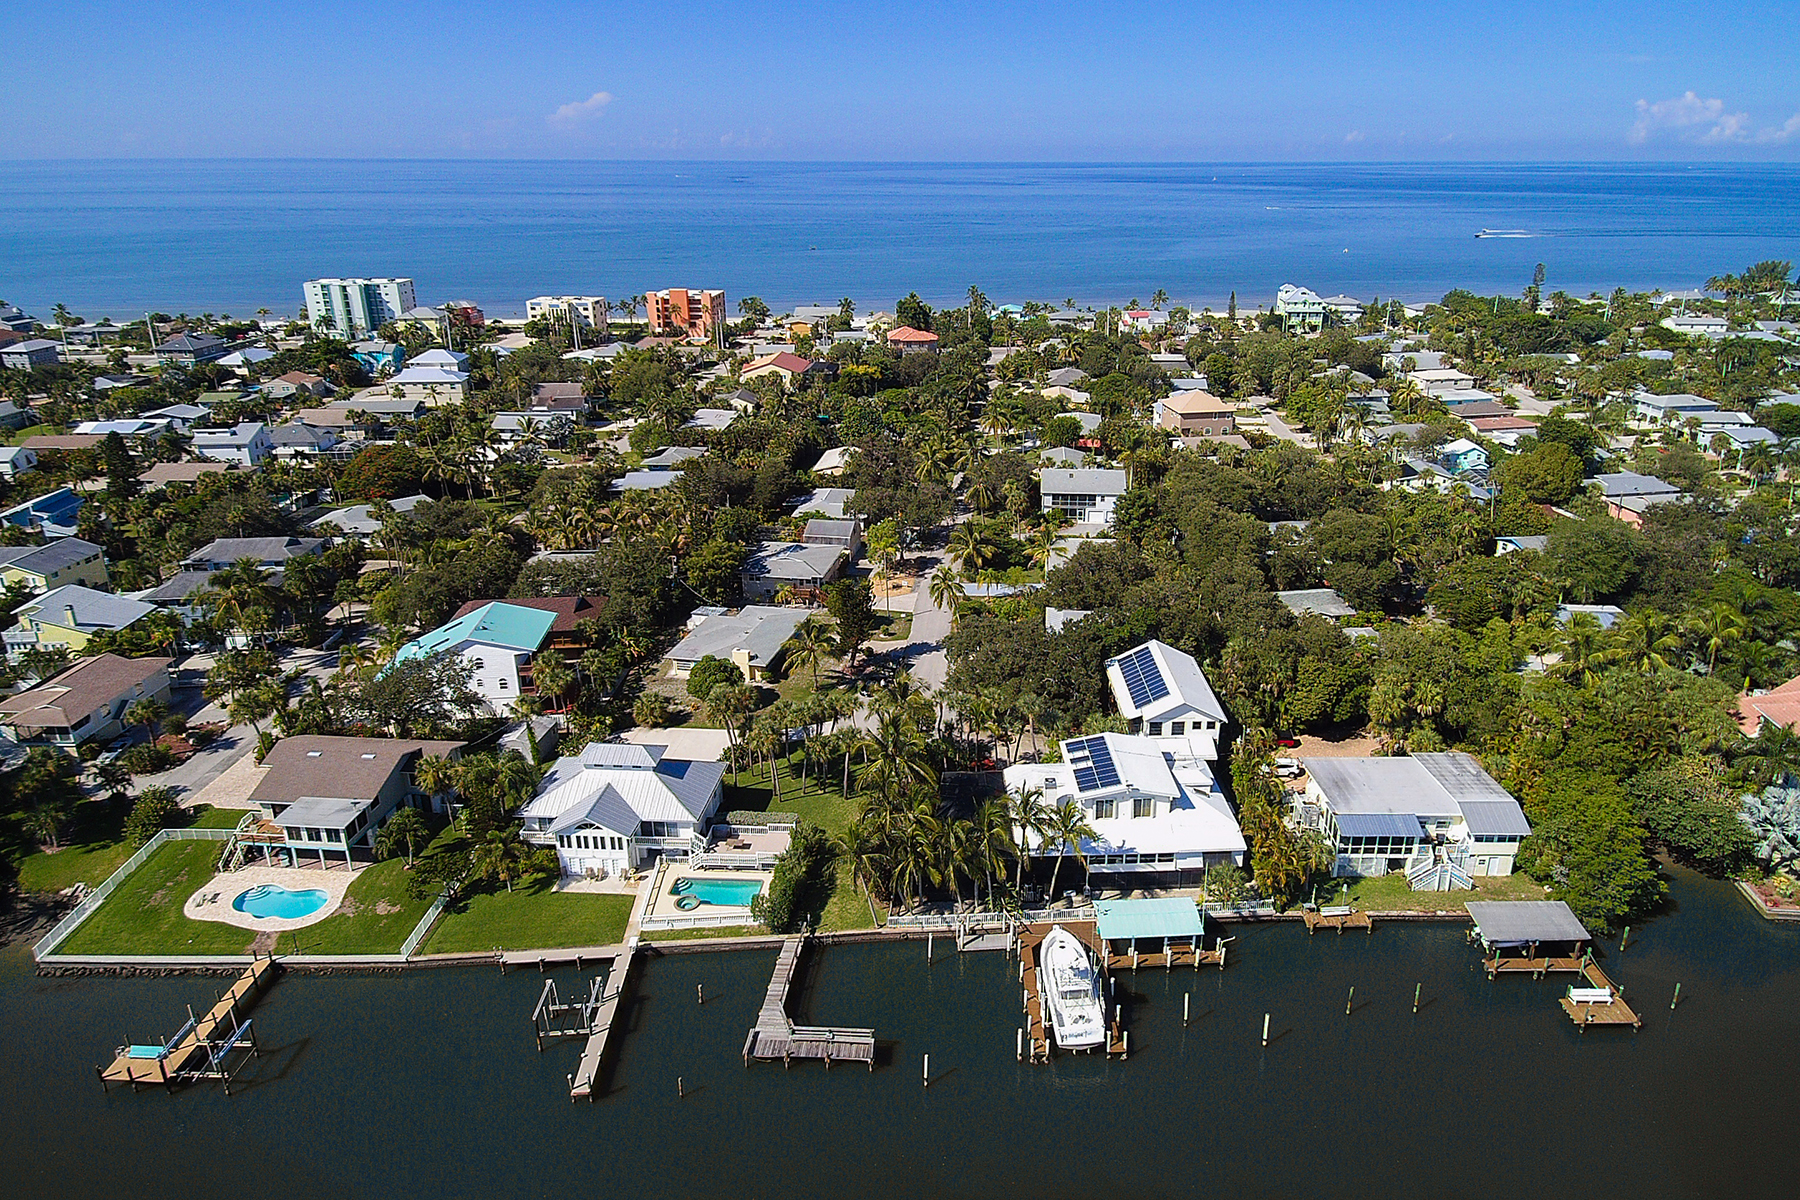 Casa Unifamiliar por un Venta en SABAL SHORES 189 Sabal Dr Fort Myers Beach, Florida, 33931 Estados Unidos